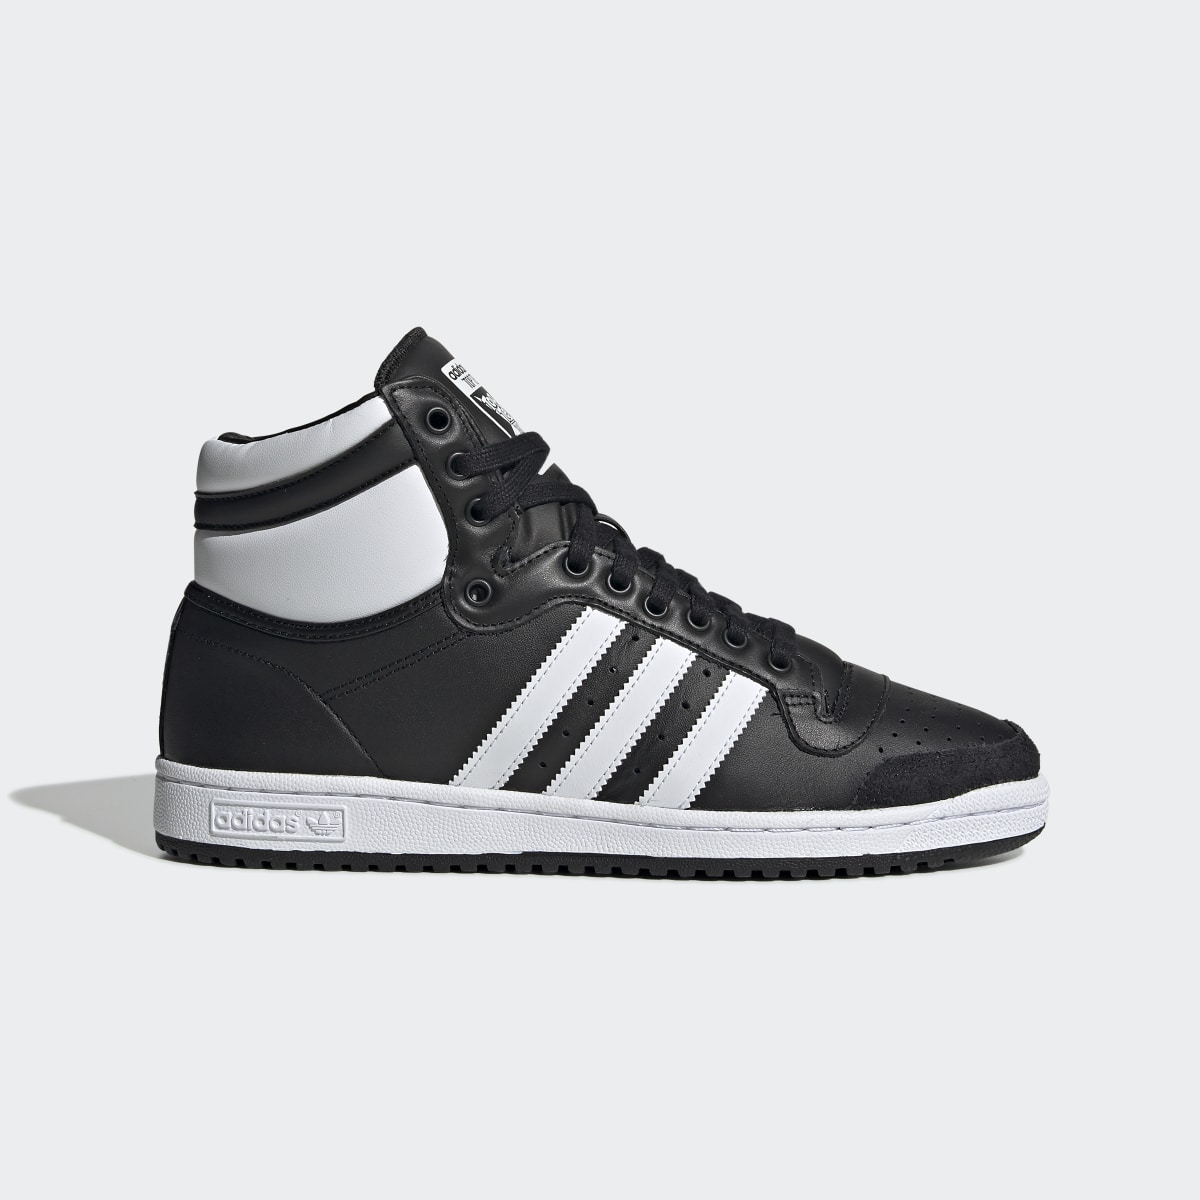 adidas superstar high top review